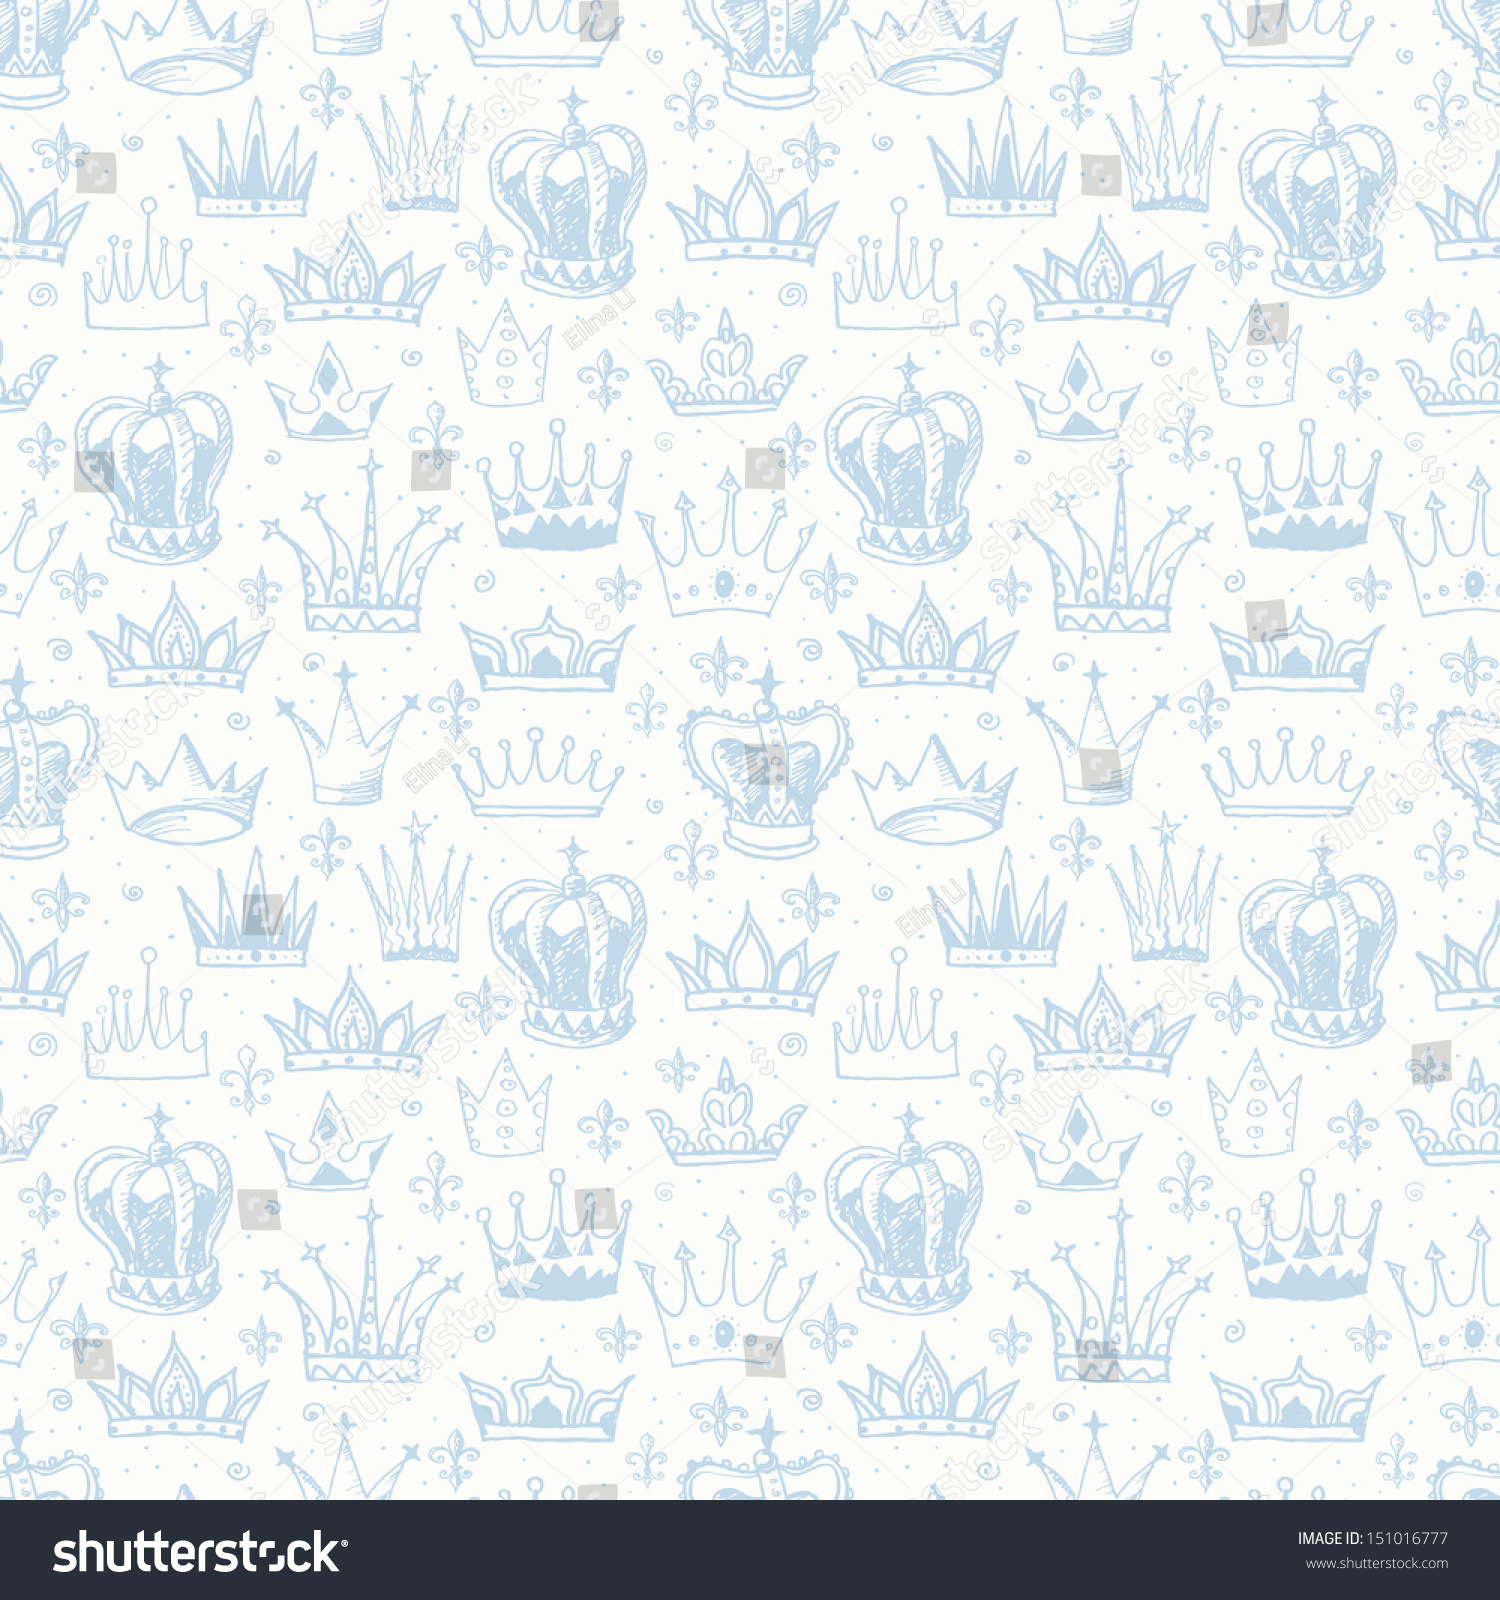 Wallpapers pattern fills web page backgrounds surface textures - Seamless Background With Crowns Can Be Used For Wallpaper Pattern Fills Textile